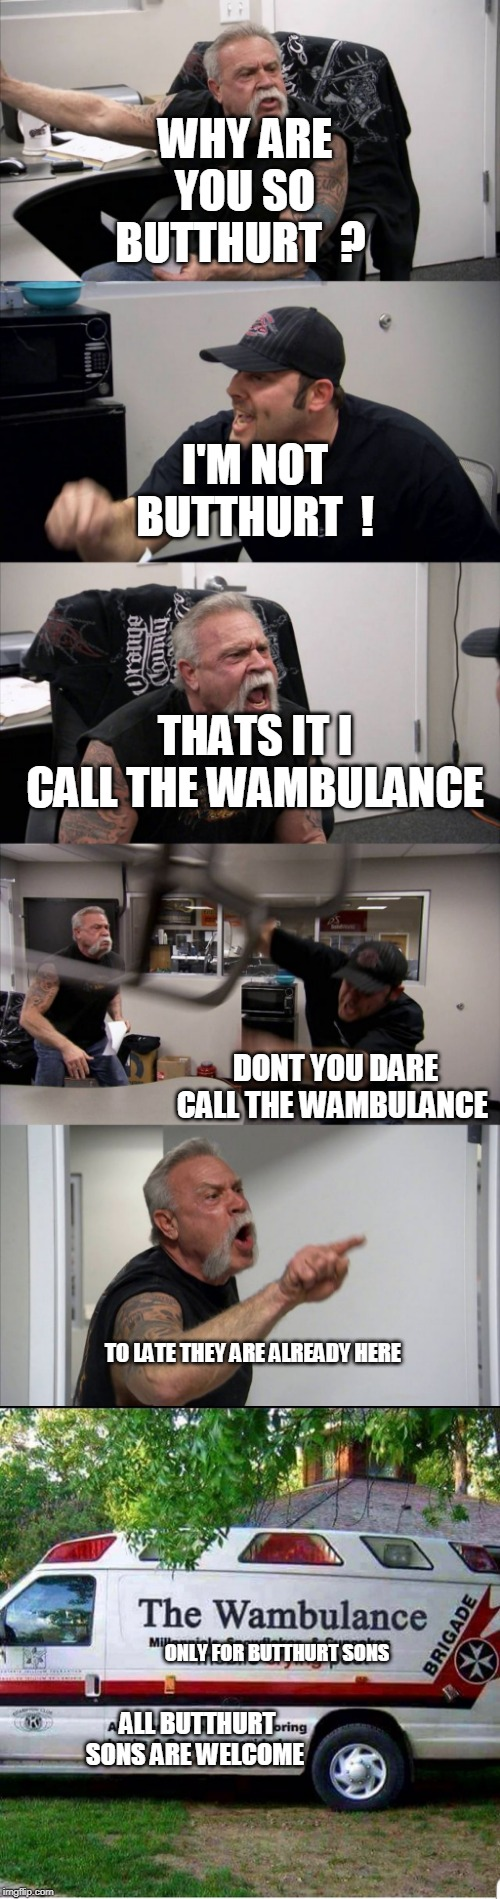 americian Butthurt chopper | WHY ARE YOU SO BUTTHURT  ? I'M NOT BUTTHURT  ! THATS IT I CALL THE WAMBULANCE DONT YOU DARE CALL THE WAMBULANCE TO LATE THEY ARE ALREADY HER | image tagged in memes,american chopper argument,butthurt | made w/ Imgflip meme maker